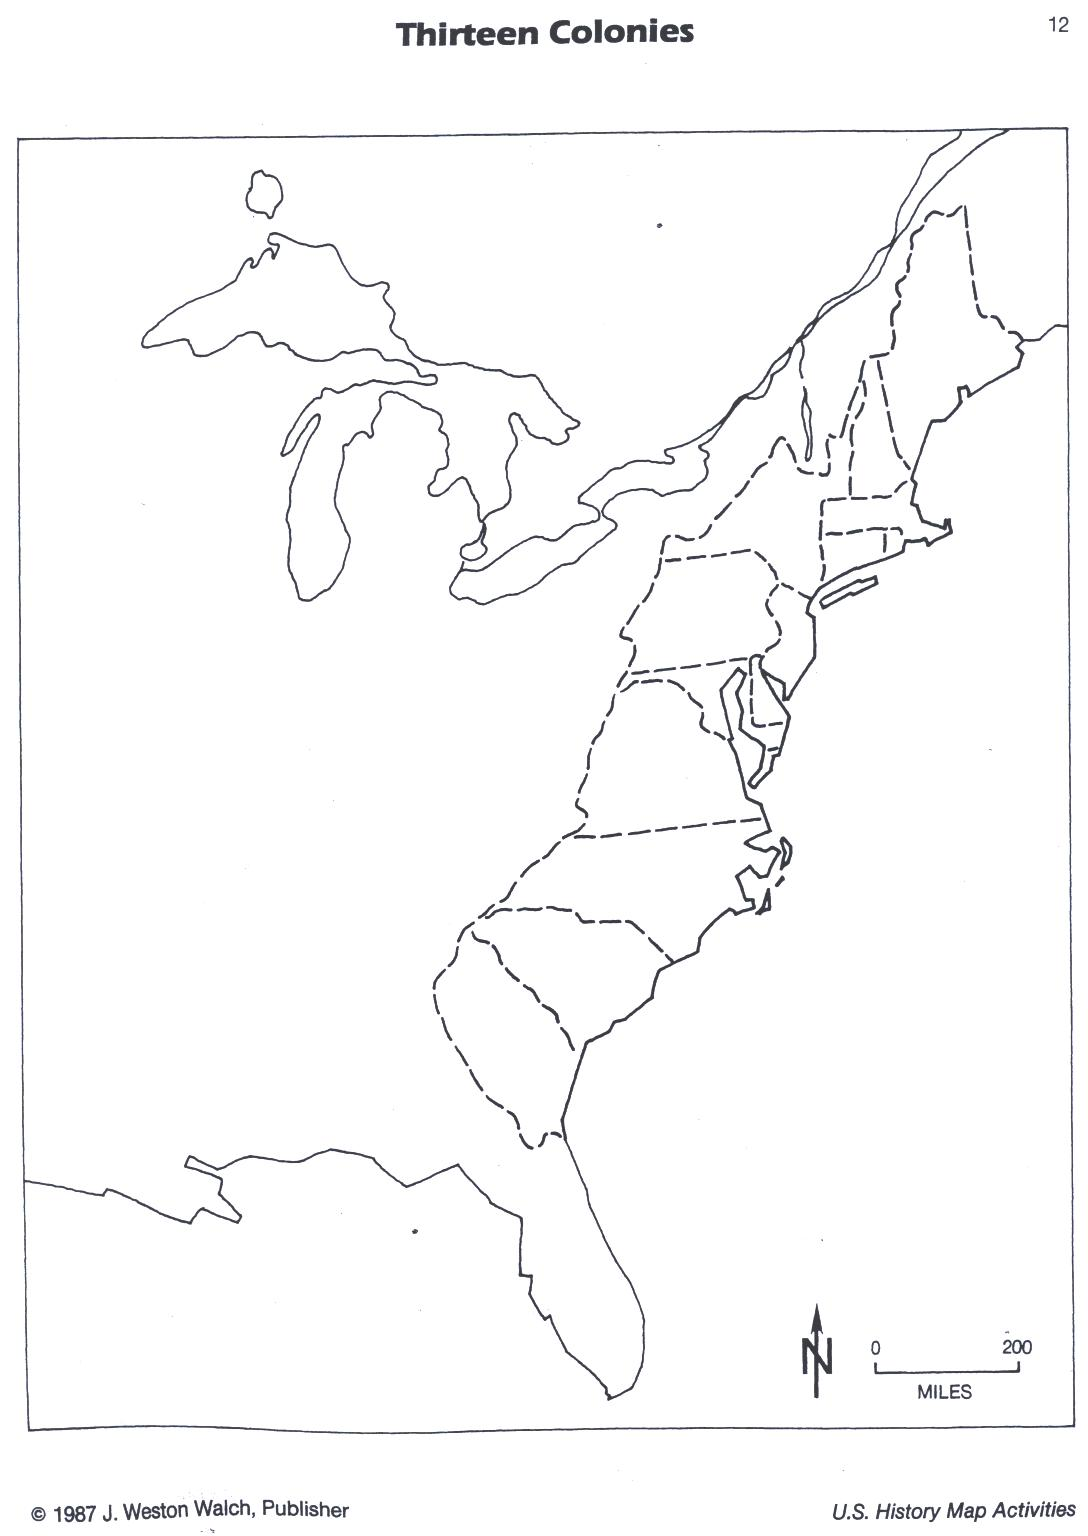 American History Mrs Allen Name 13 Colonies Map Activity Instructions